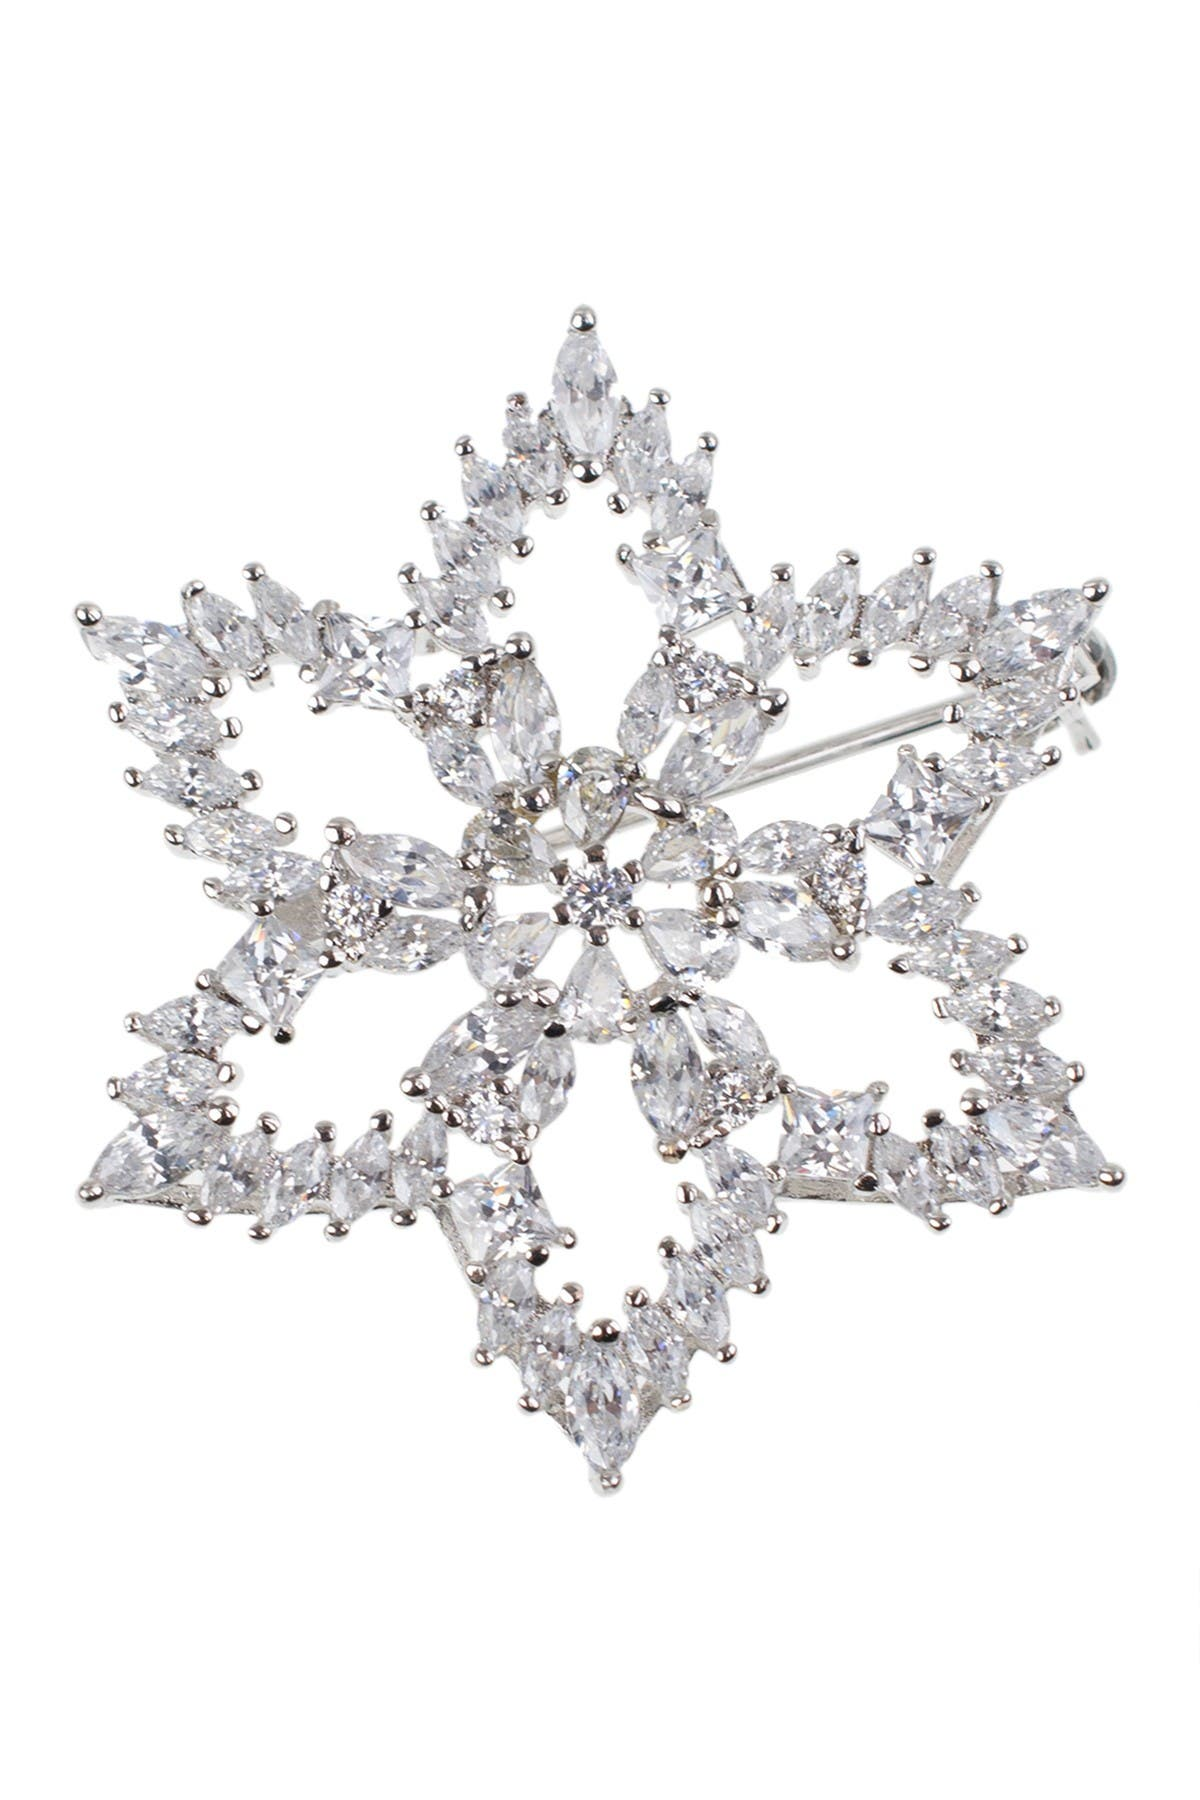 Image of CZ By Kenneth Jay Lane Rhodium Plated Multi CZ Glamorous Brooch